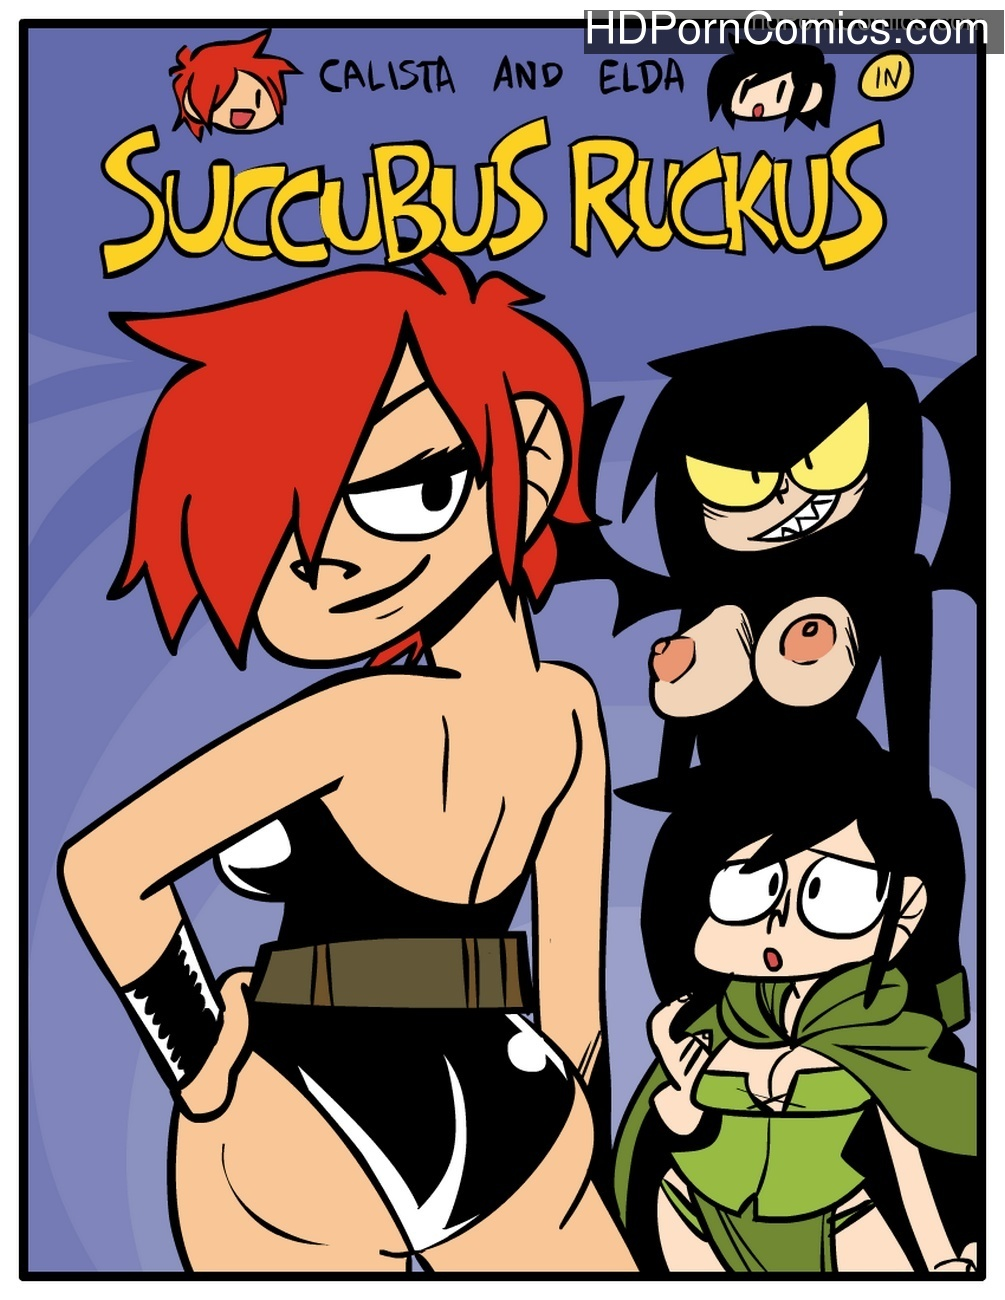 Calista And Elda In Succubus Ruckus Sex Comic